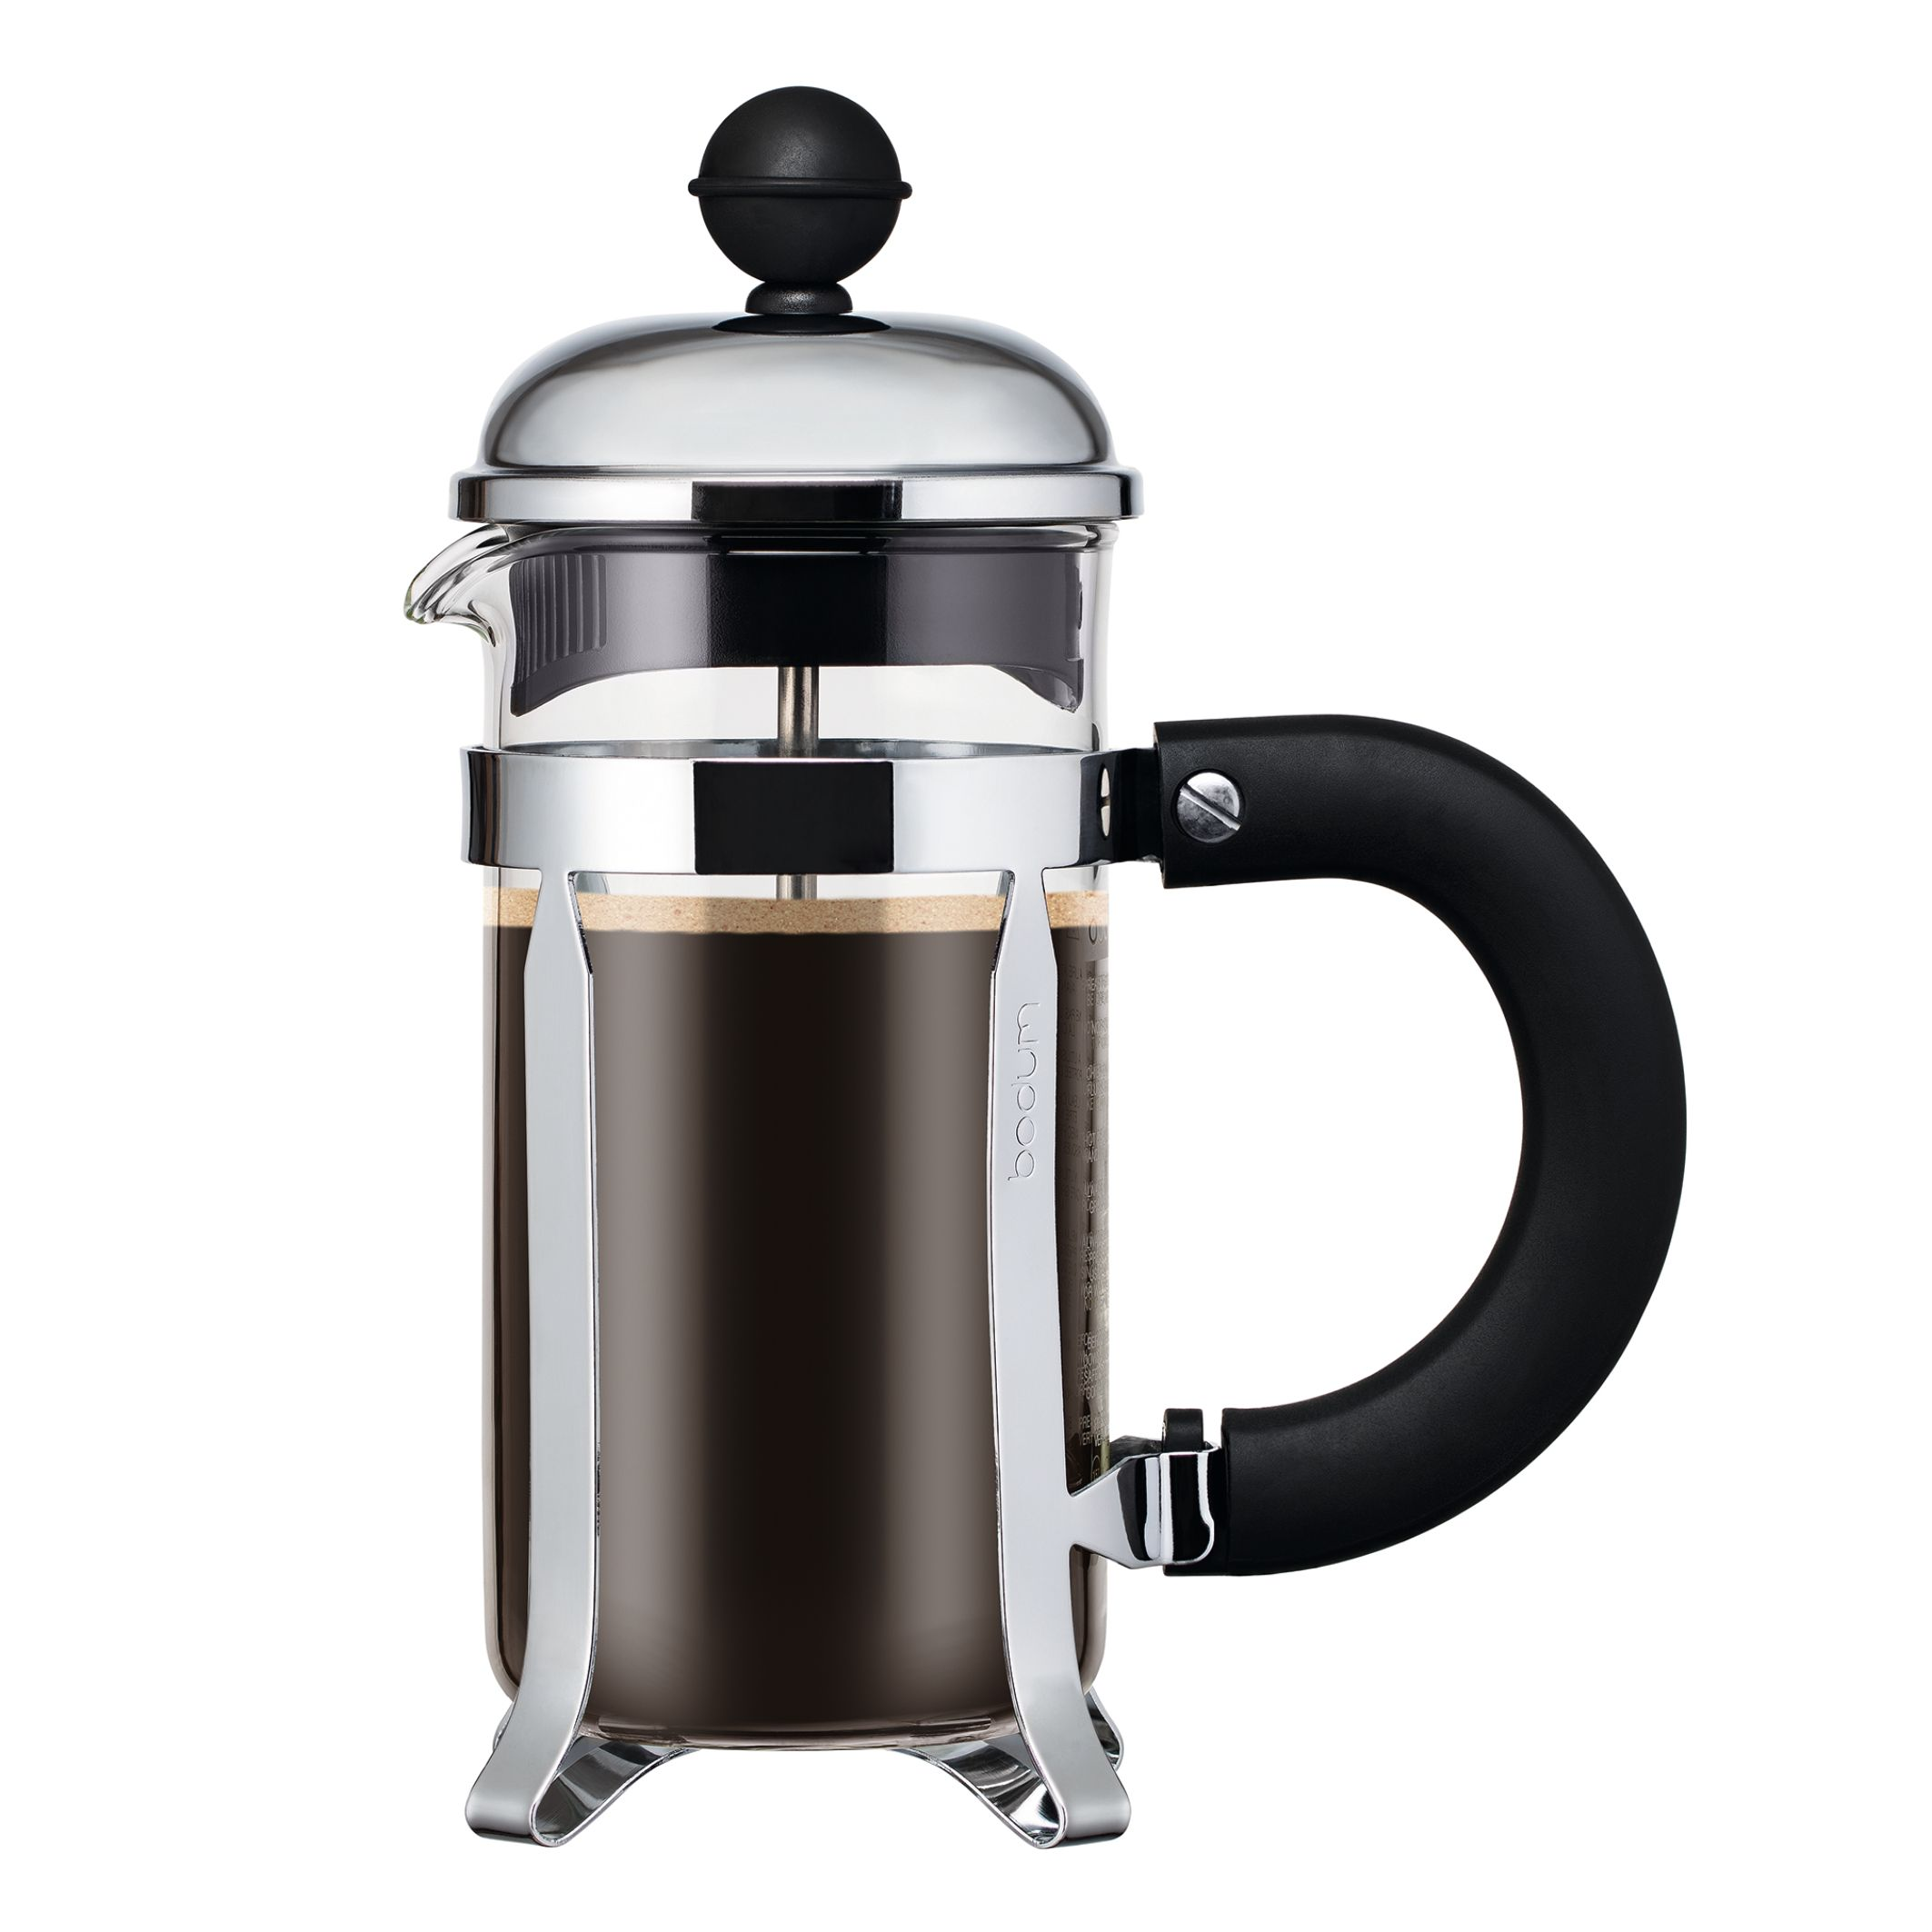 Bodum CHAMBORD French Press Coffee Maker with Santoprene Handle, .35L, 12oz, 3 Cup, Chrome